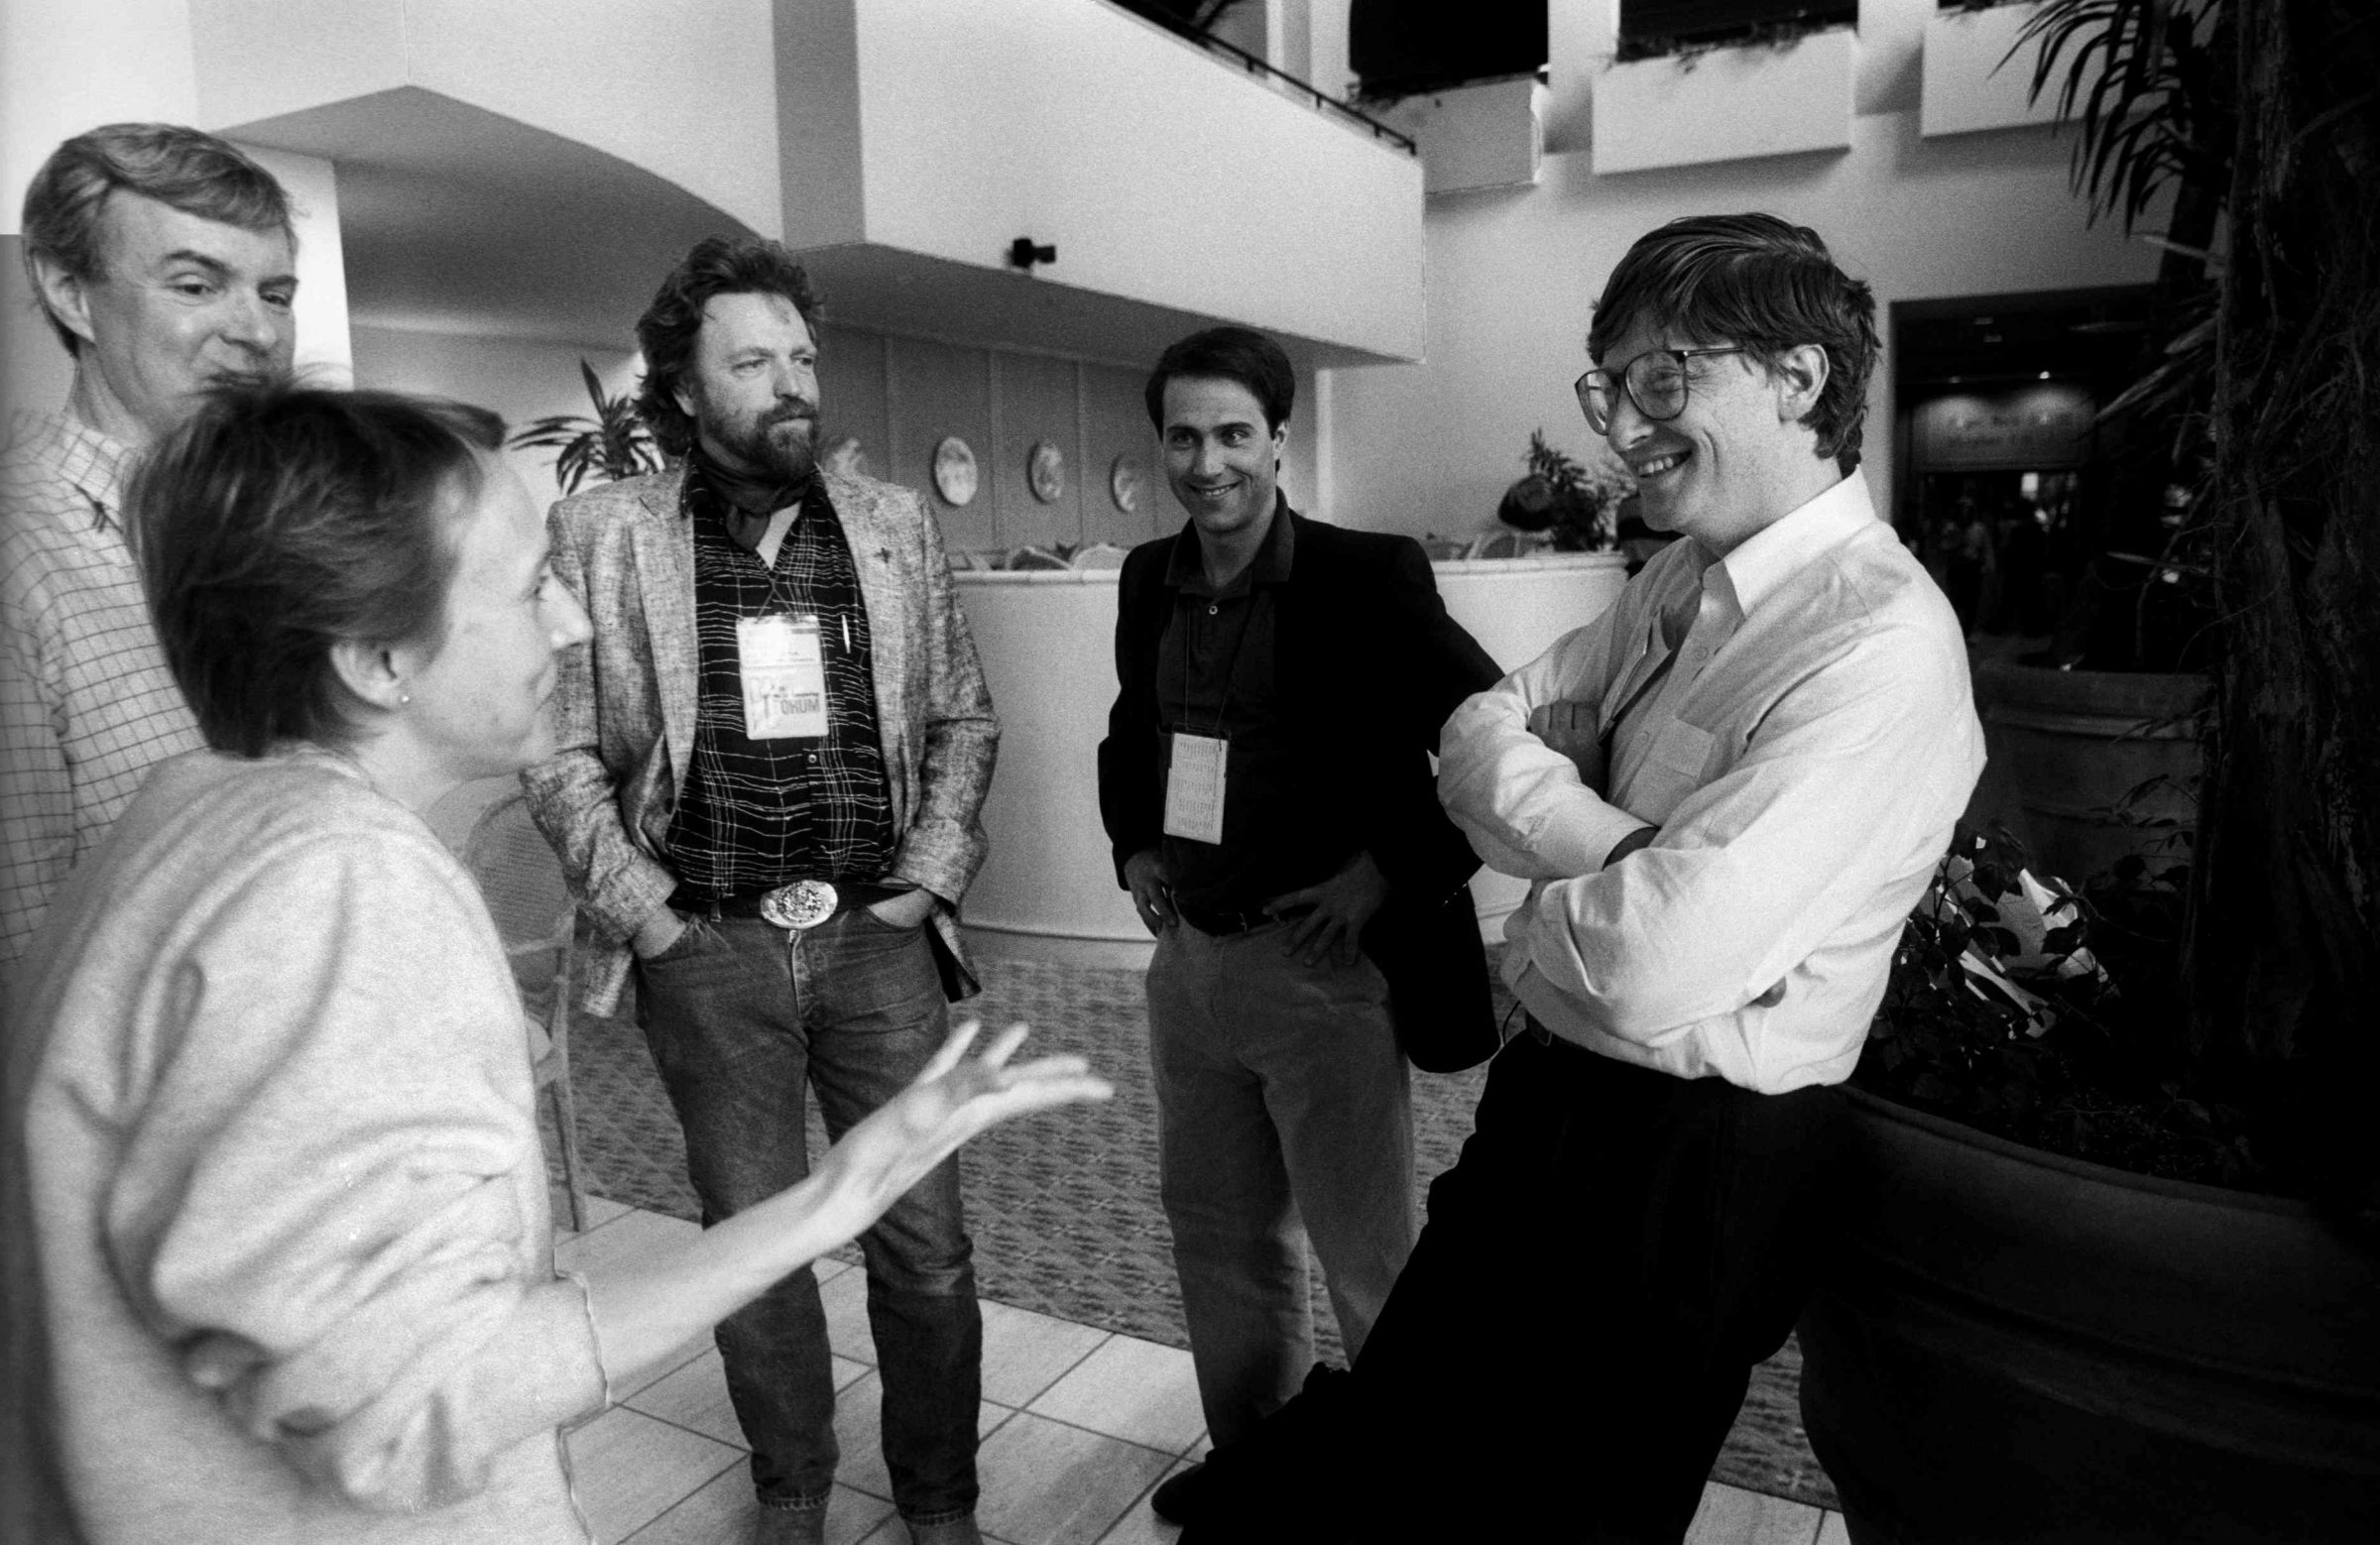 John Perry Barlow (centre, with beard) speaks with Bill Gates at the Annual PC Forum, 1991. Credit: Ann E. Yow-Dyson / Getty Images.